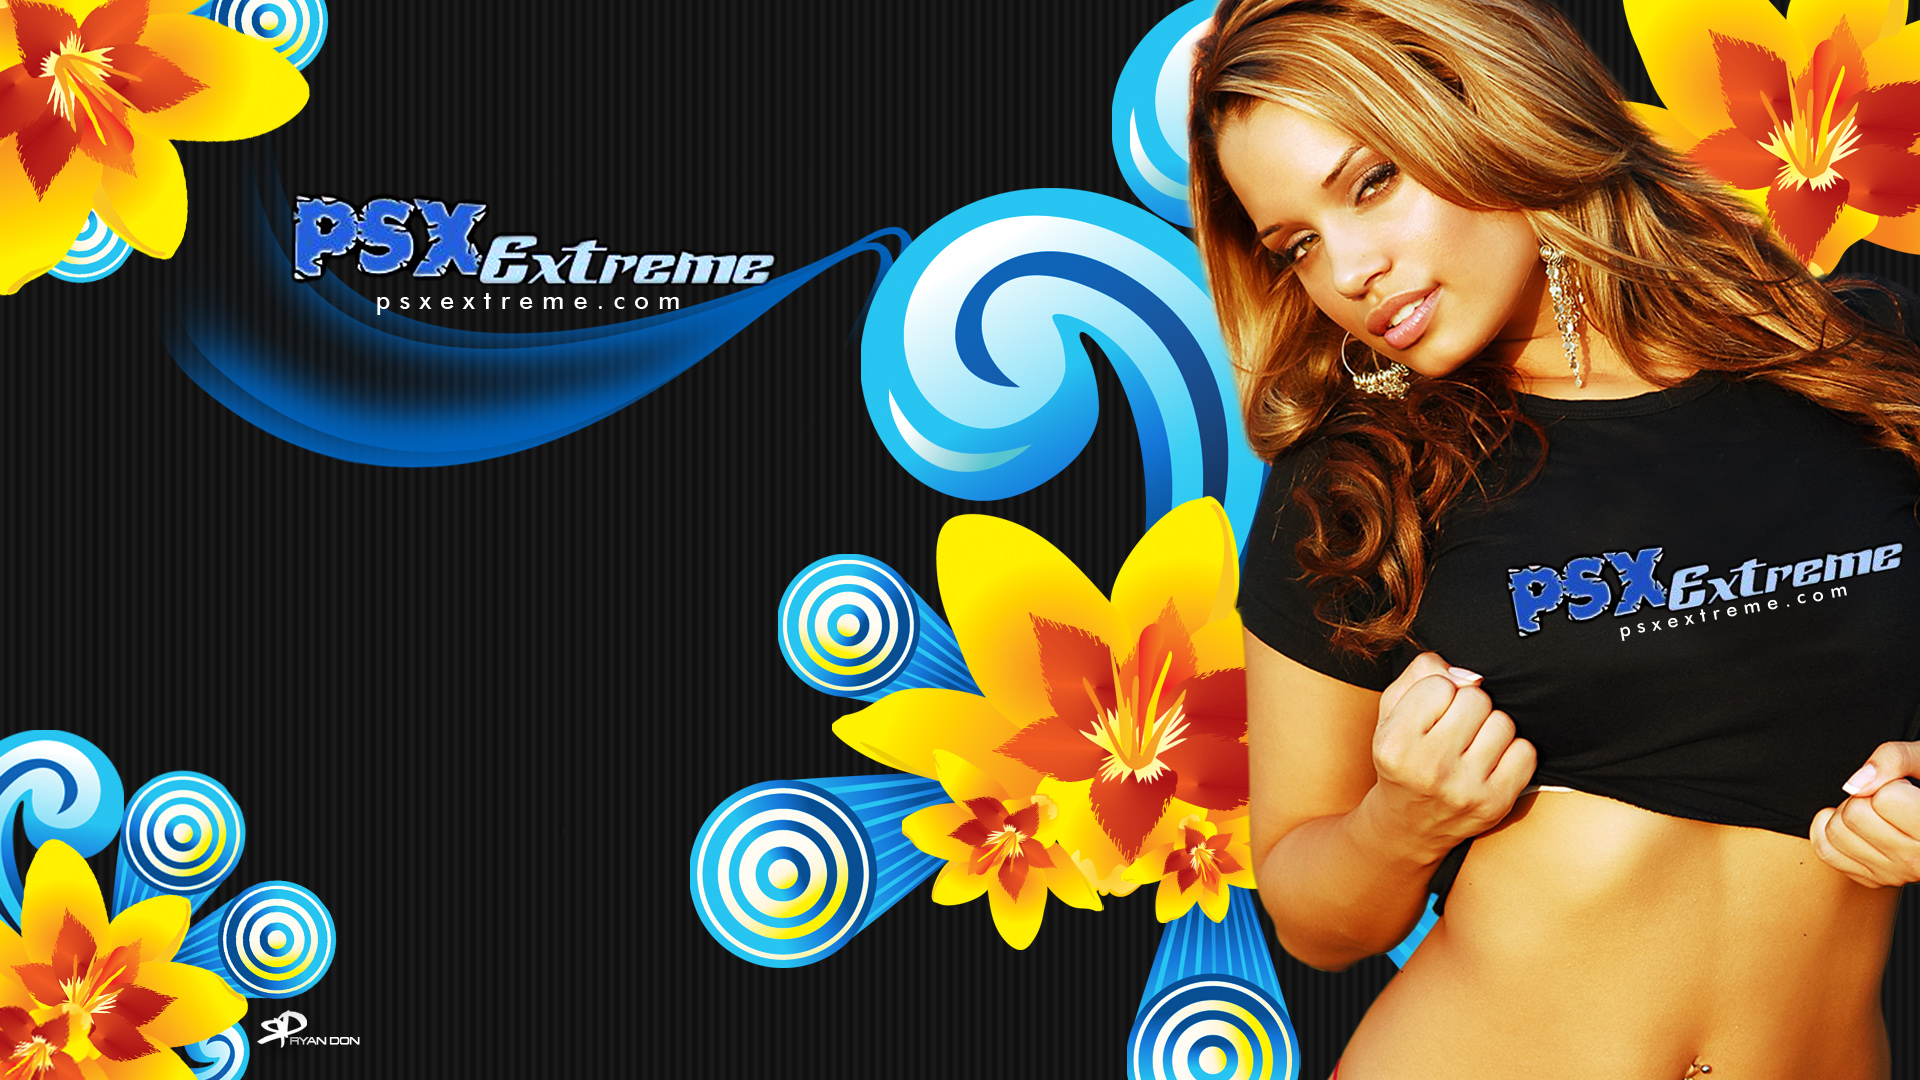 PSXExtreme Wallpaper Wallpapers